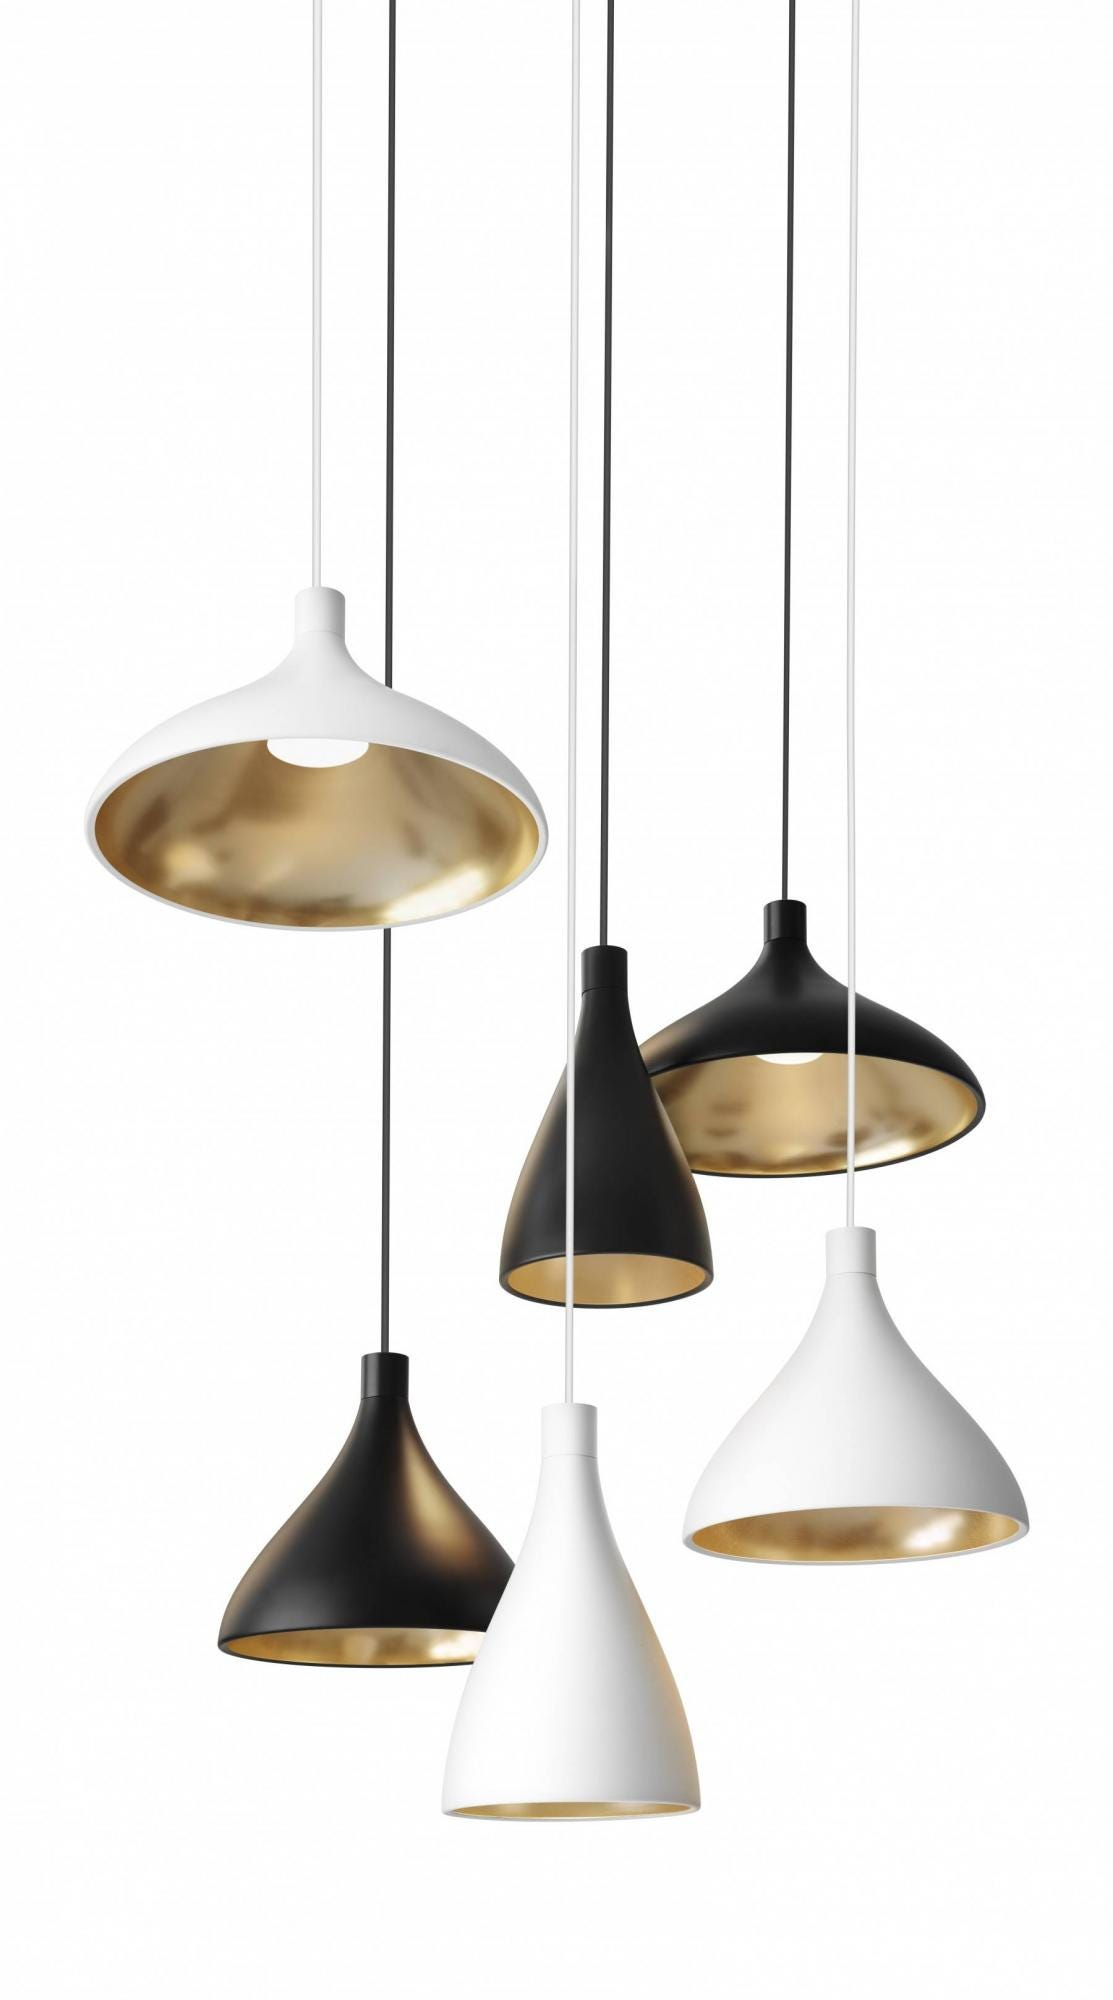 Pablo Swell 1 Chandelier Mix Pendant Lamp